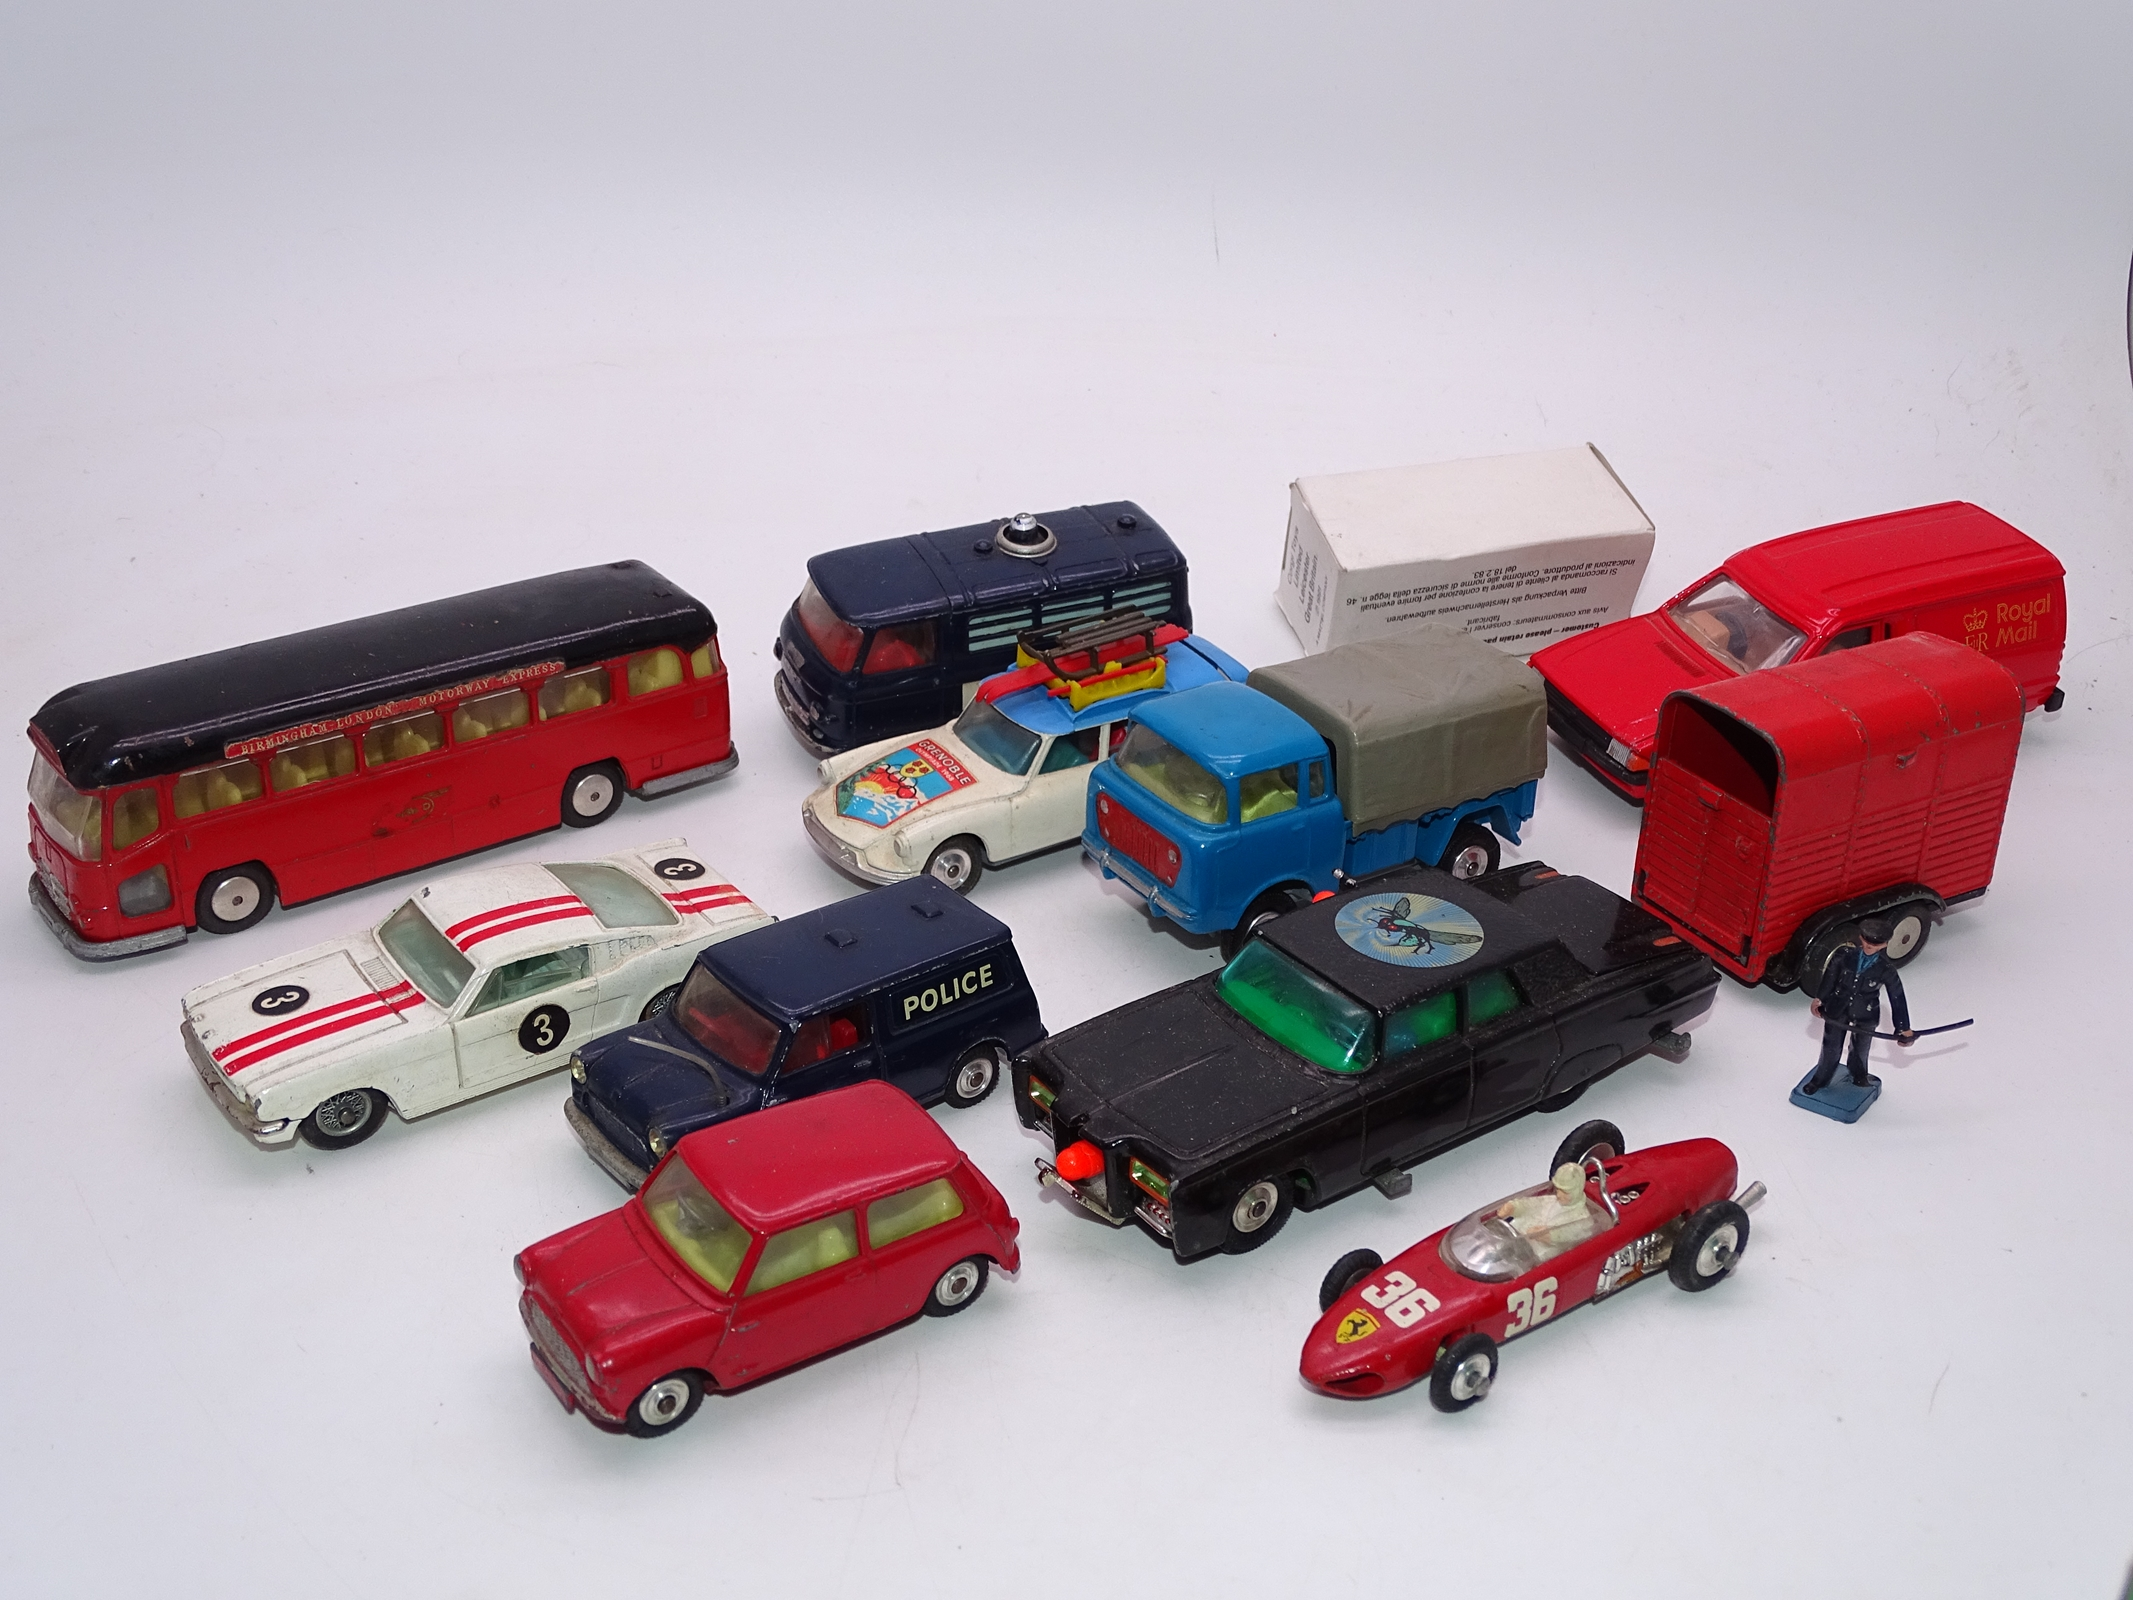 Lot 4 - A group of unboxed playworn vintage Corgi cars, trucks and bus. F-G, unboxed. (12)